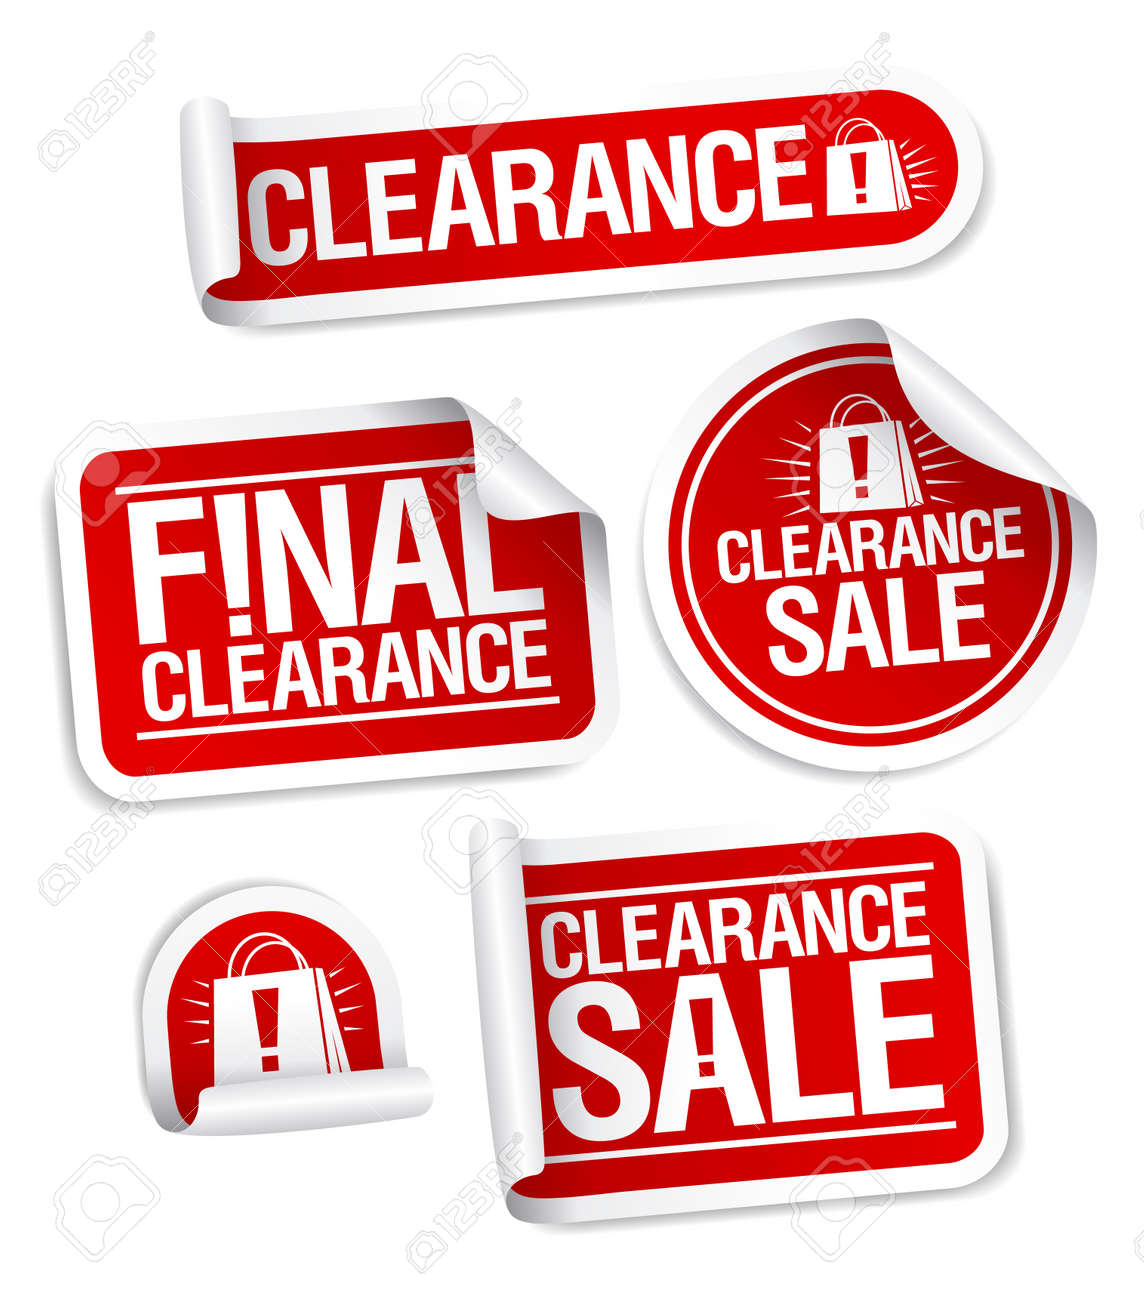 Final clearance sale stickers. Stock Vector - 11976666